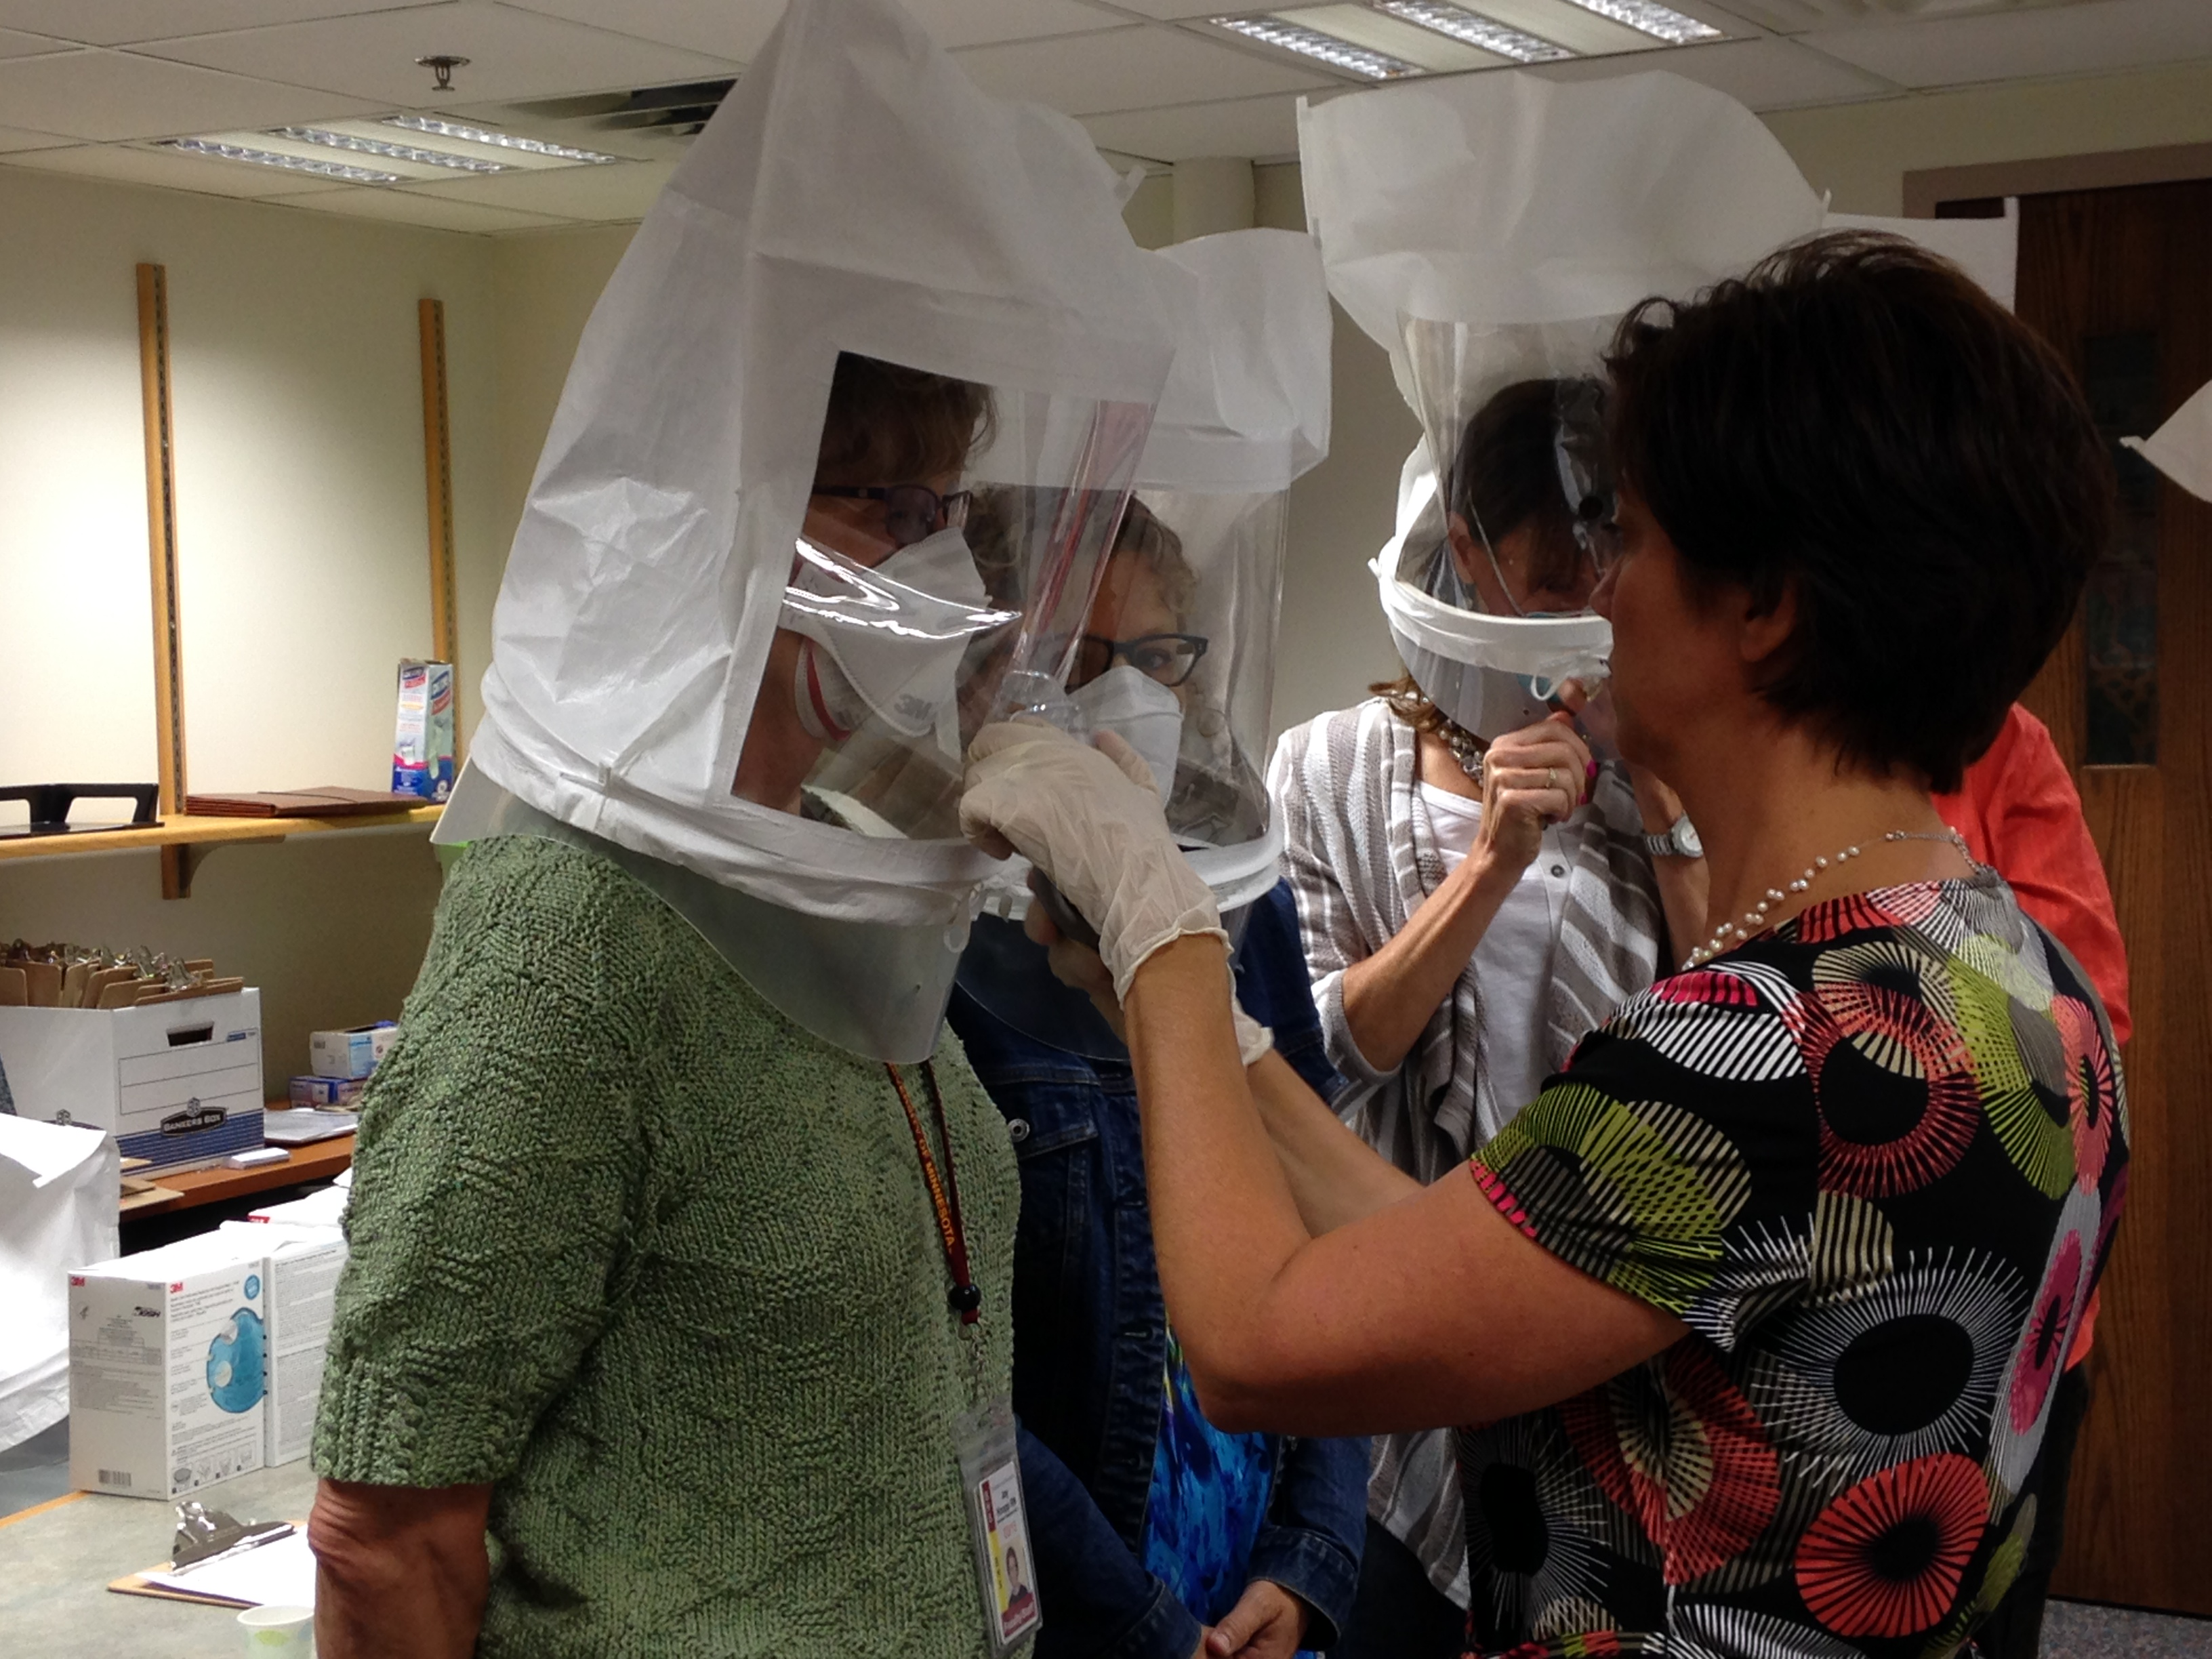 N95 Respirator fit testing of Boyton nurses.